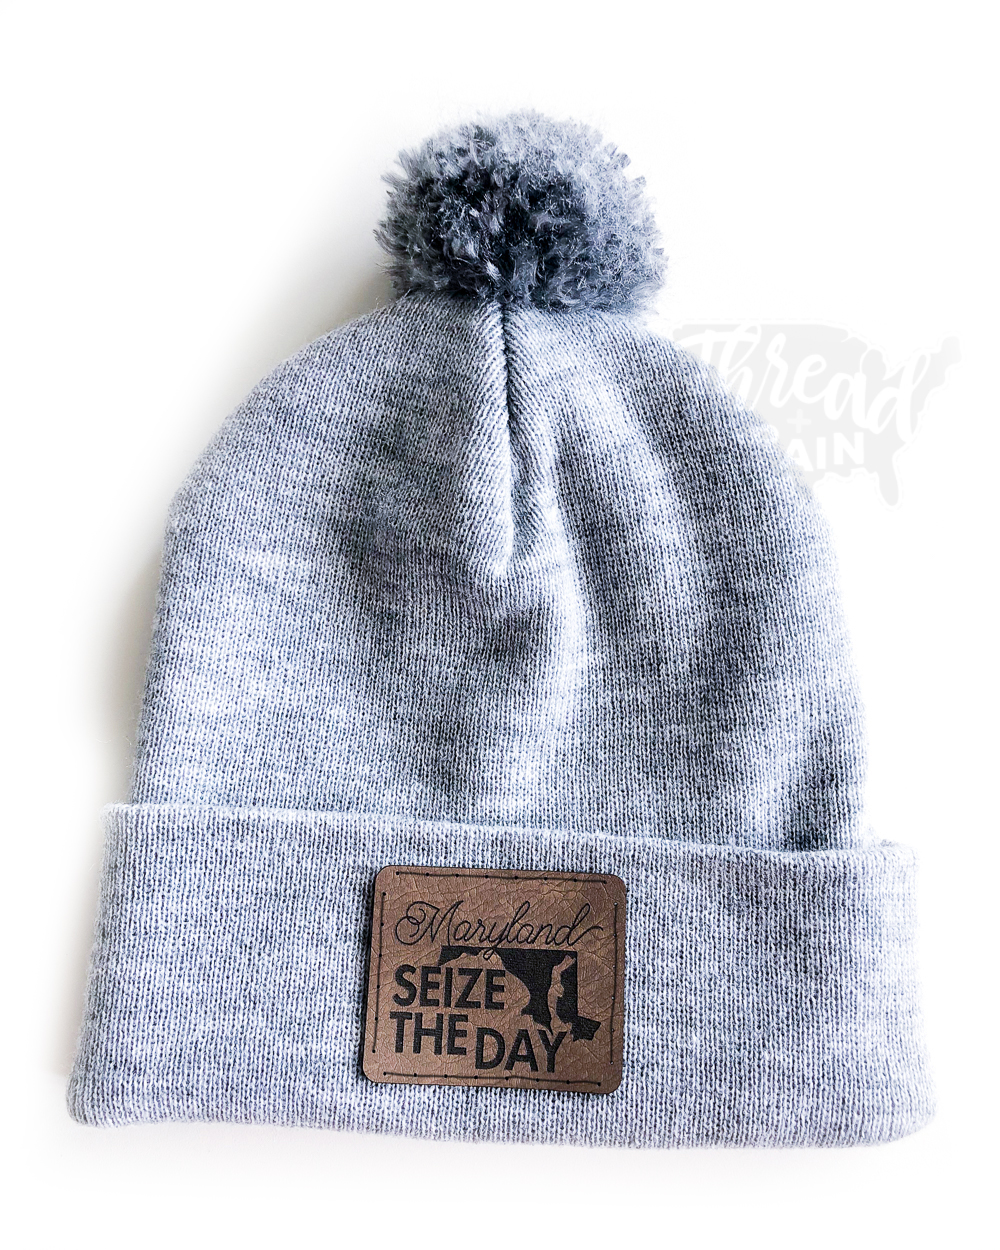 Maryland :: Seize the Day PATCHED HAT